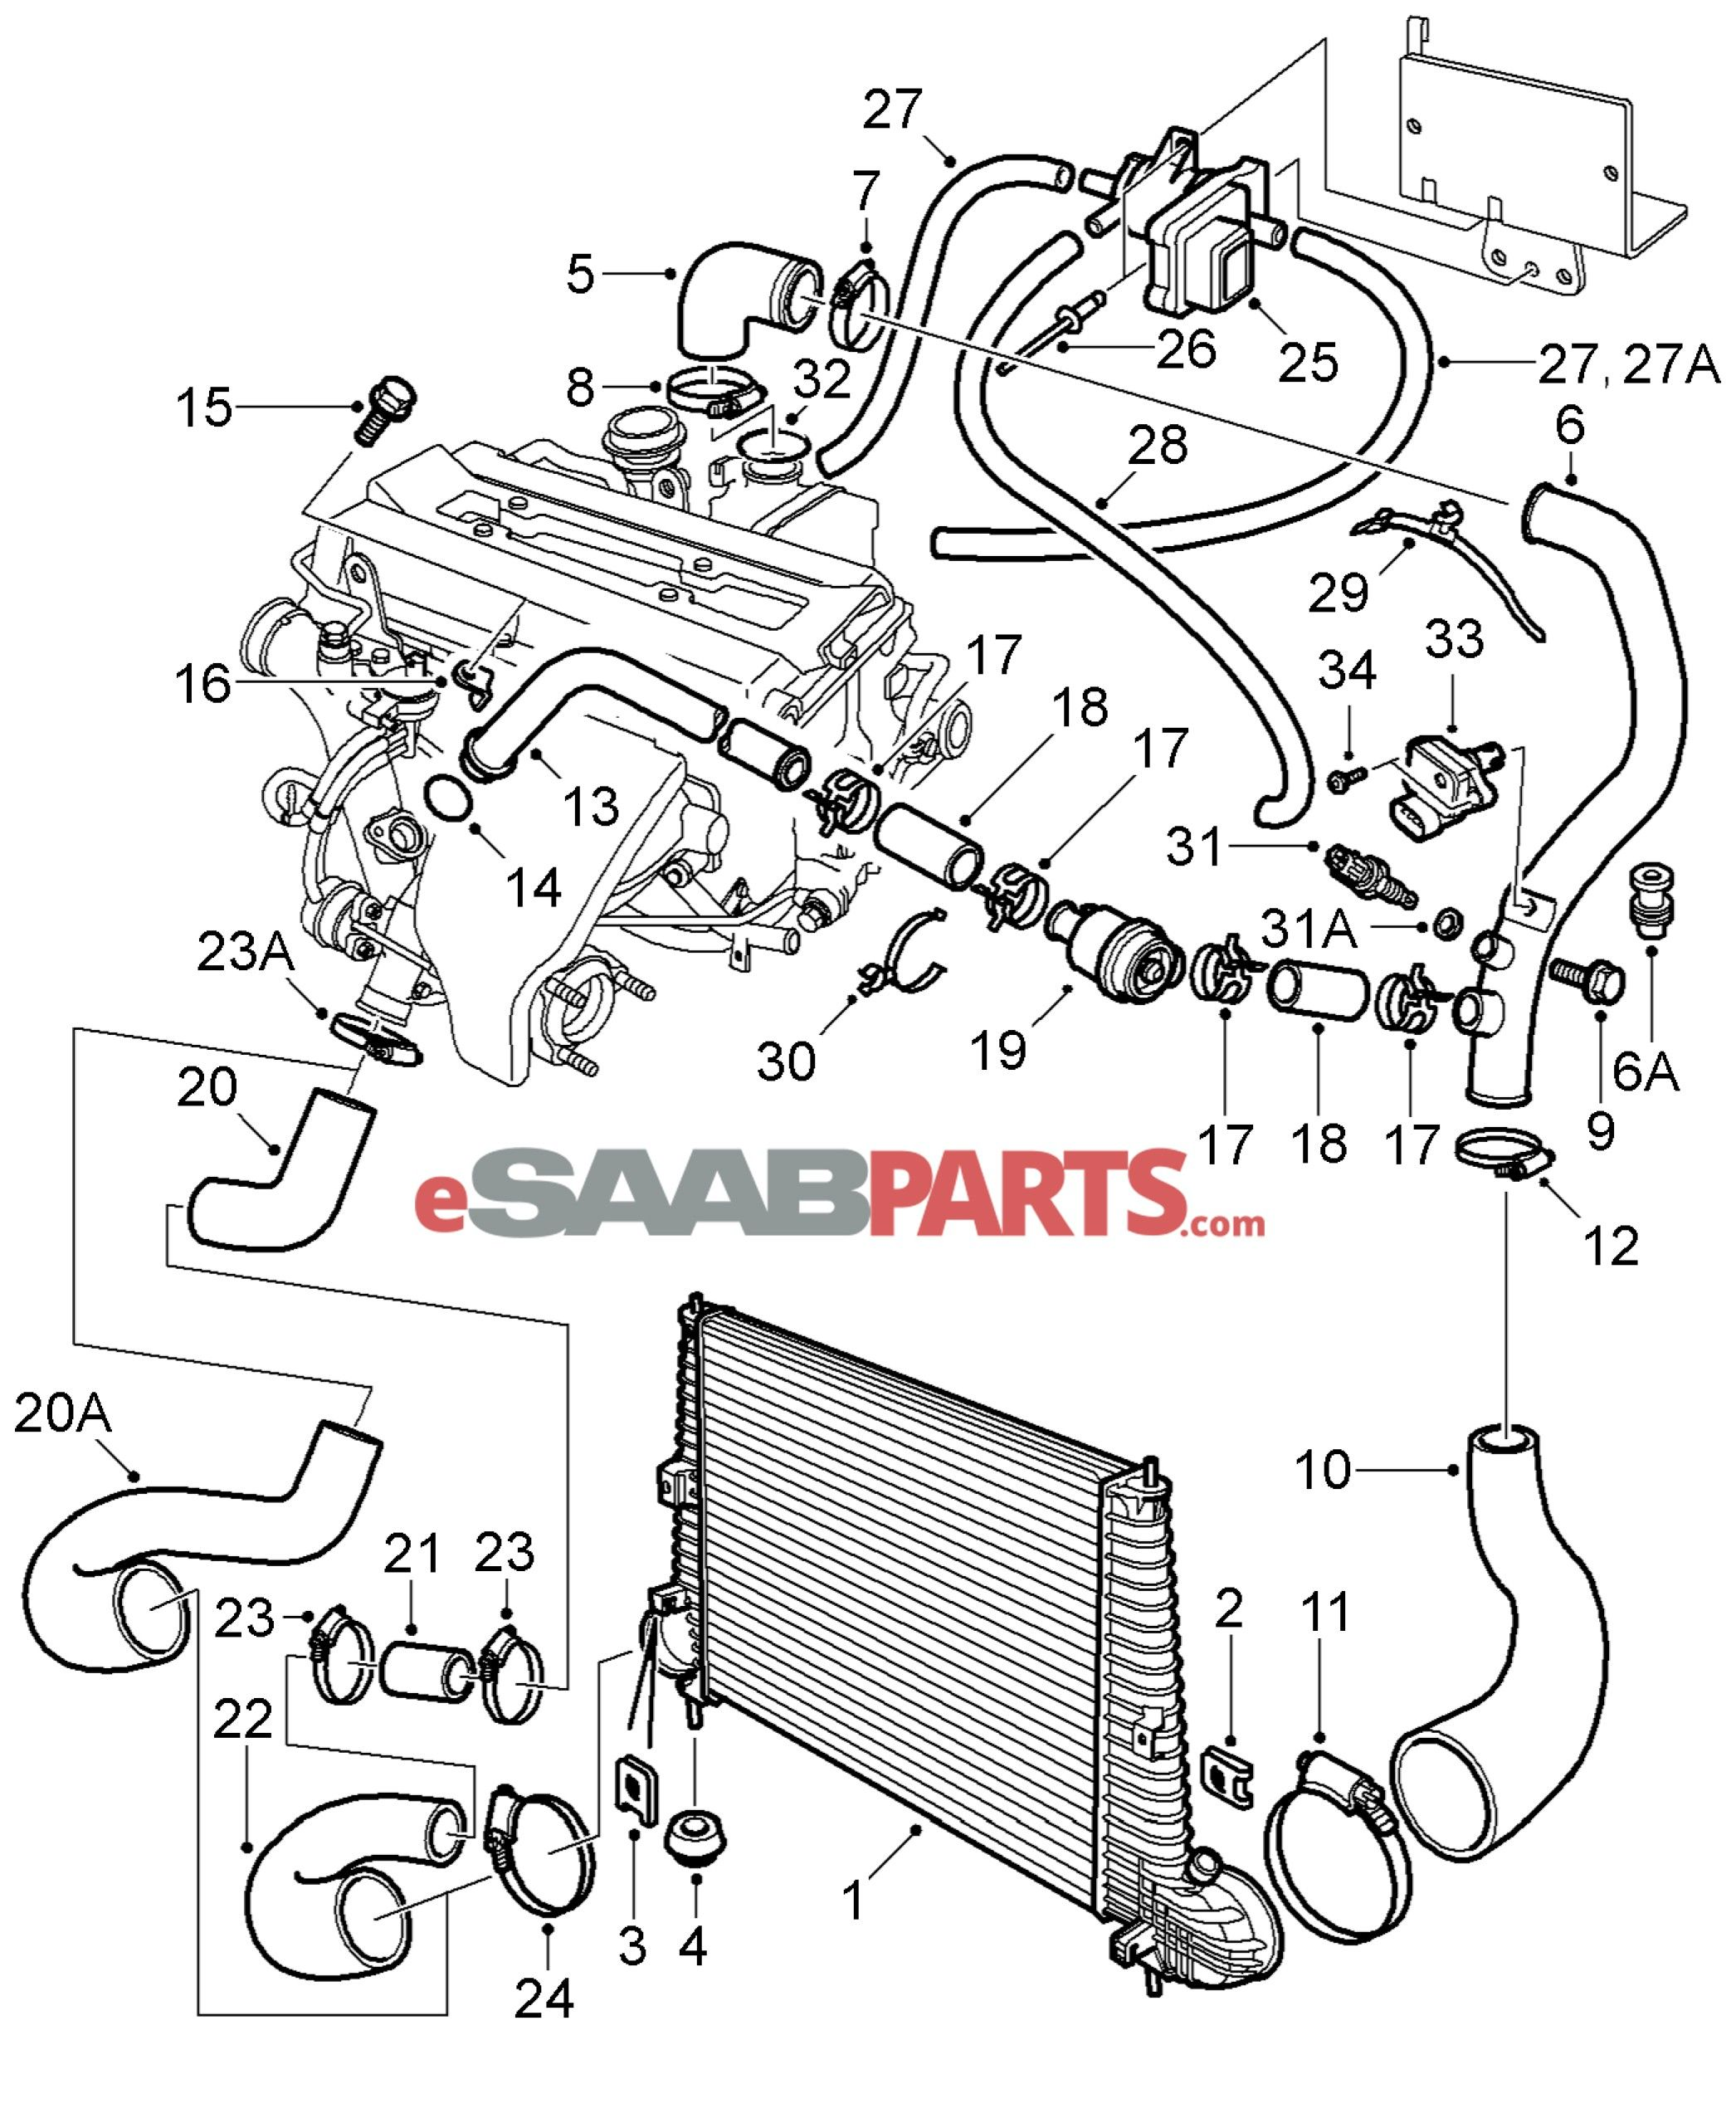 Saab 9 3 Engine Diagram In 2020 Saab 9 3 Saab Engineering